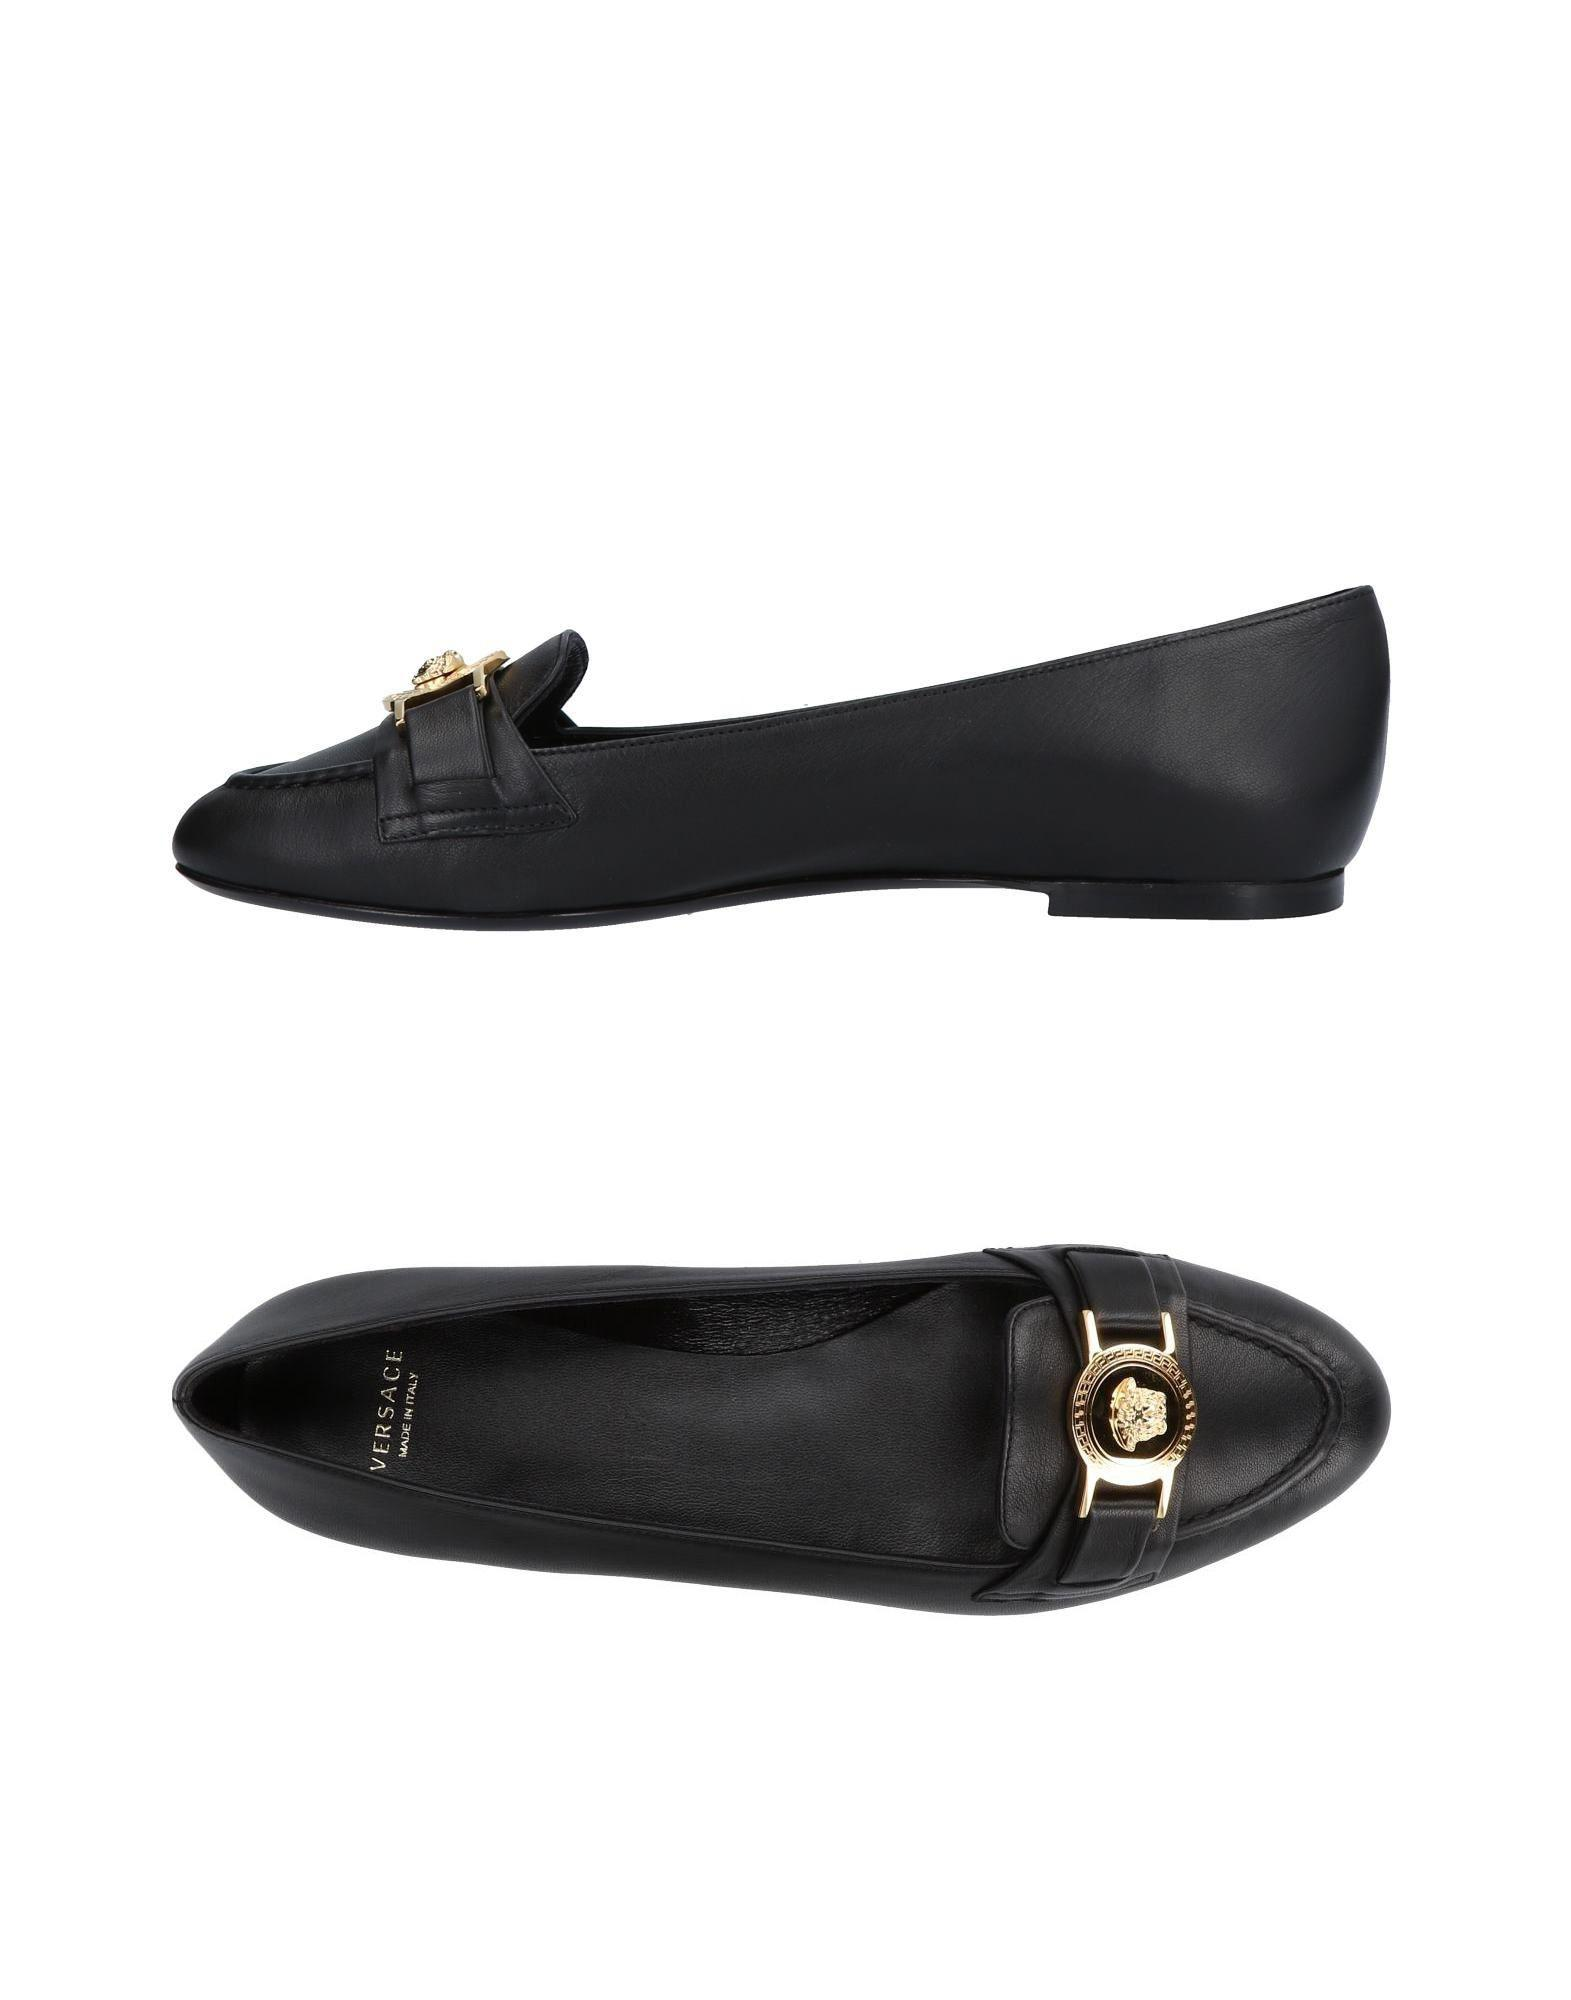 a5afc9e3 Lyst - Versace Loafer in Black